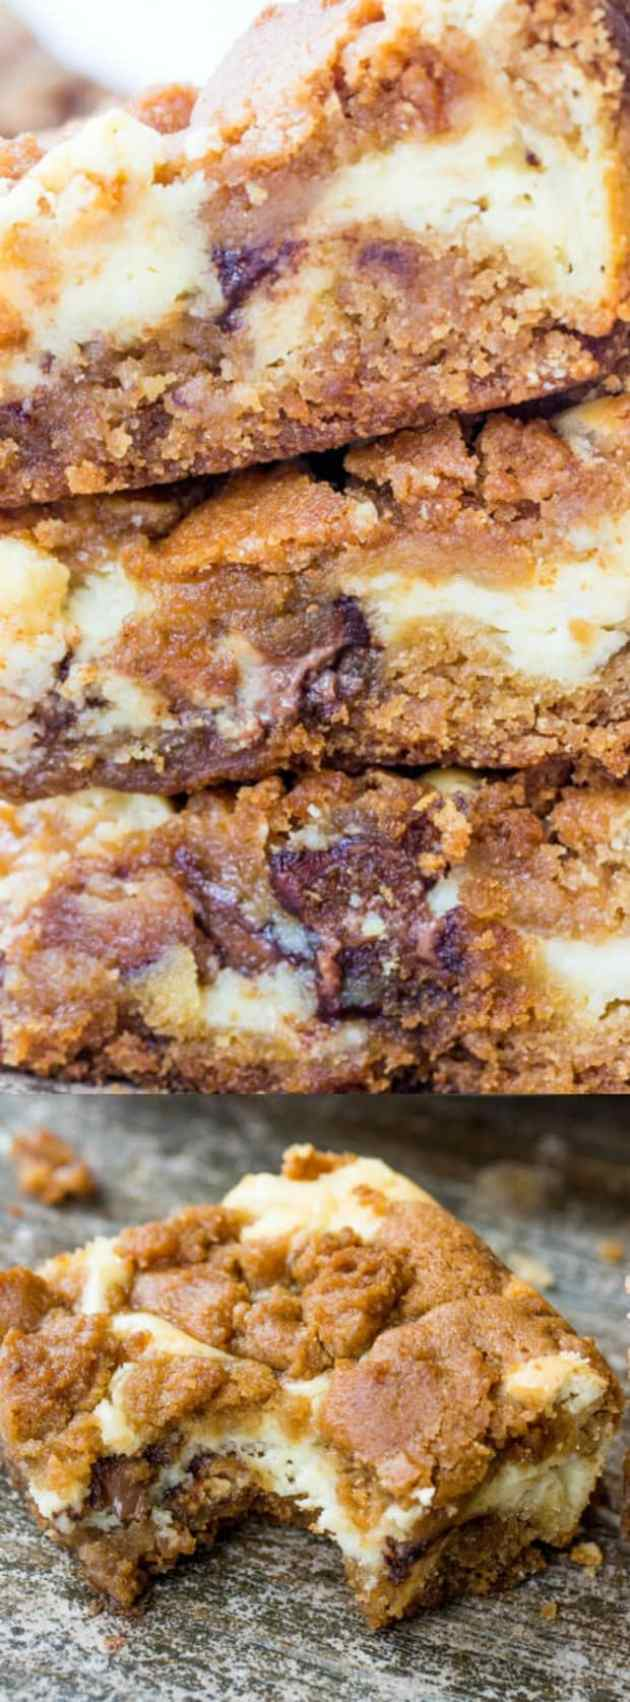 Peanut Butter cup cheesecake bars longpin